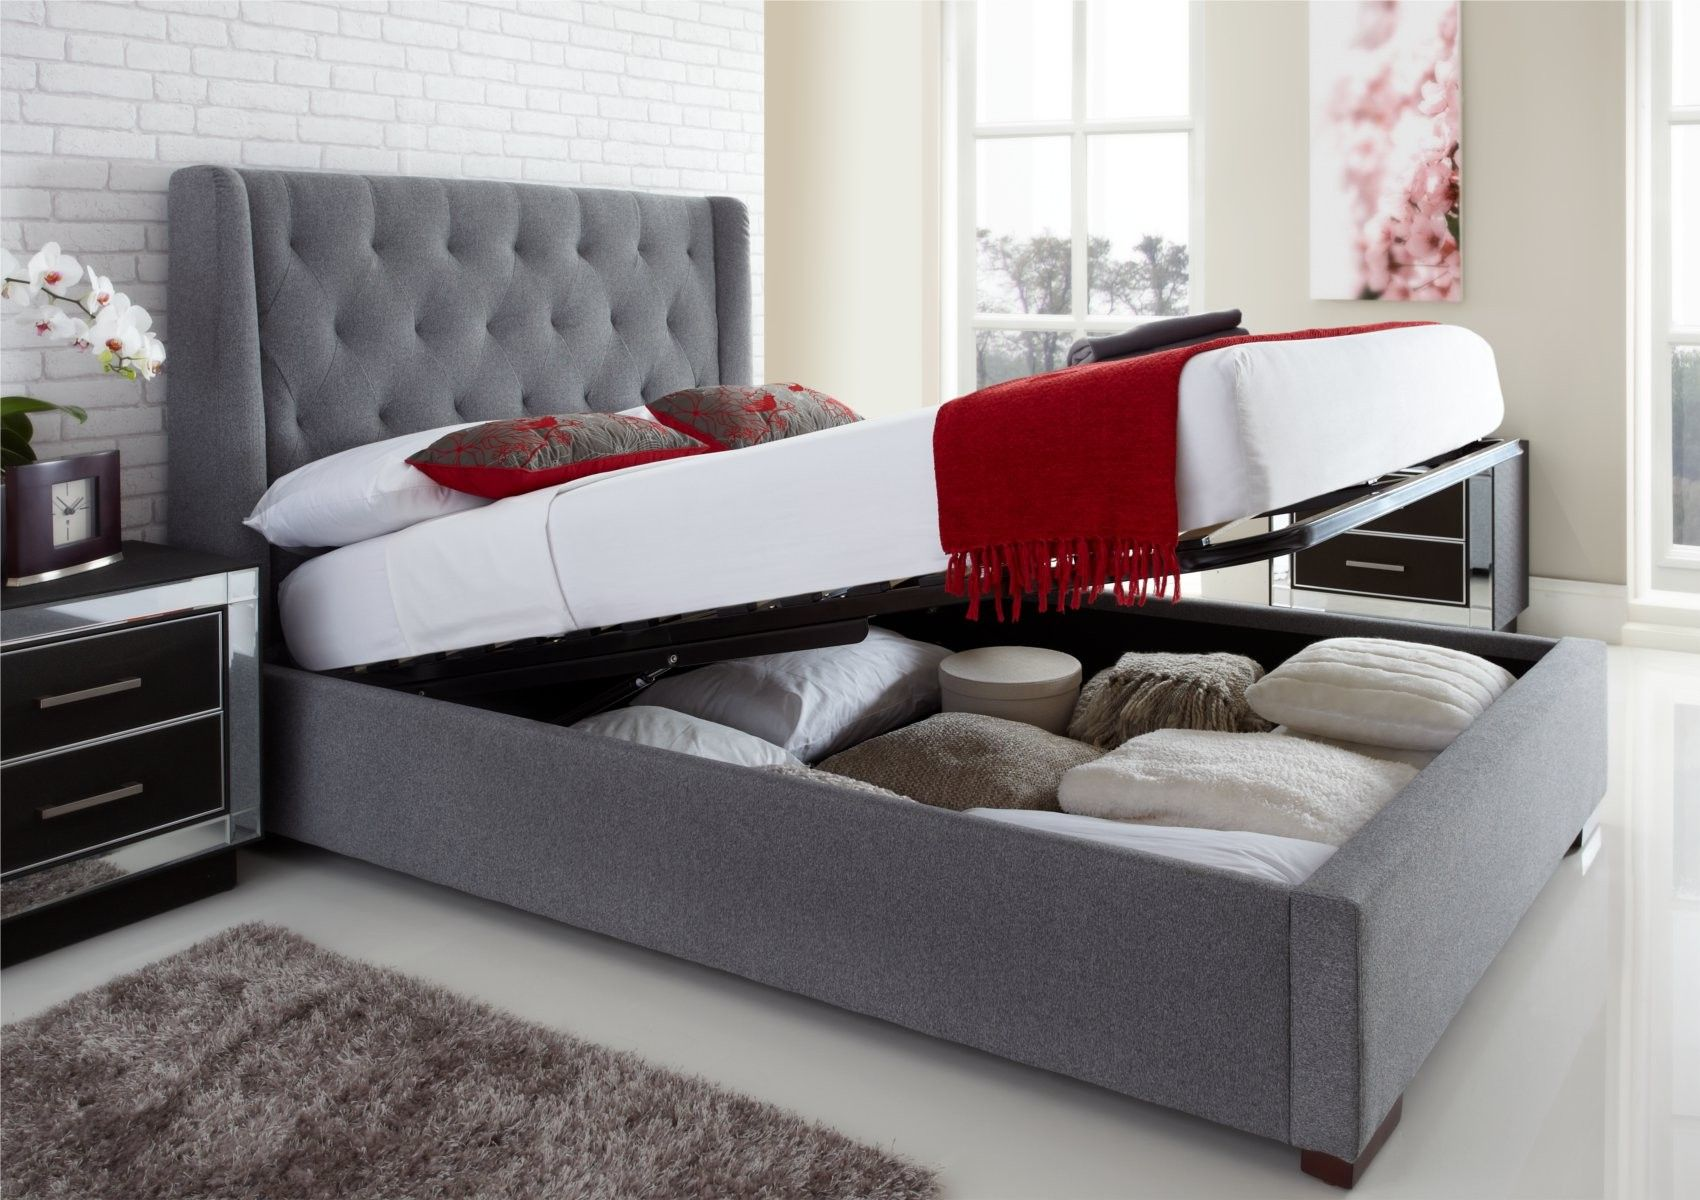 Ottoman storage bed, Ottoman storage and Storage beds on Pinterest